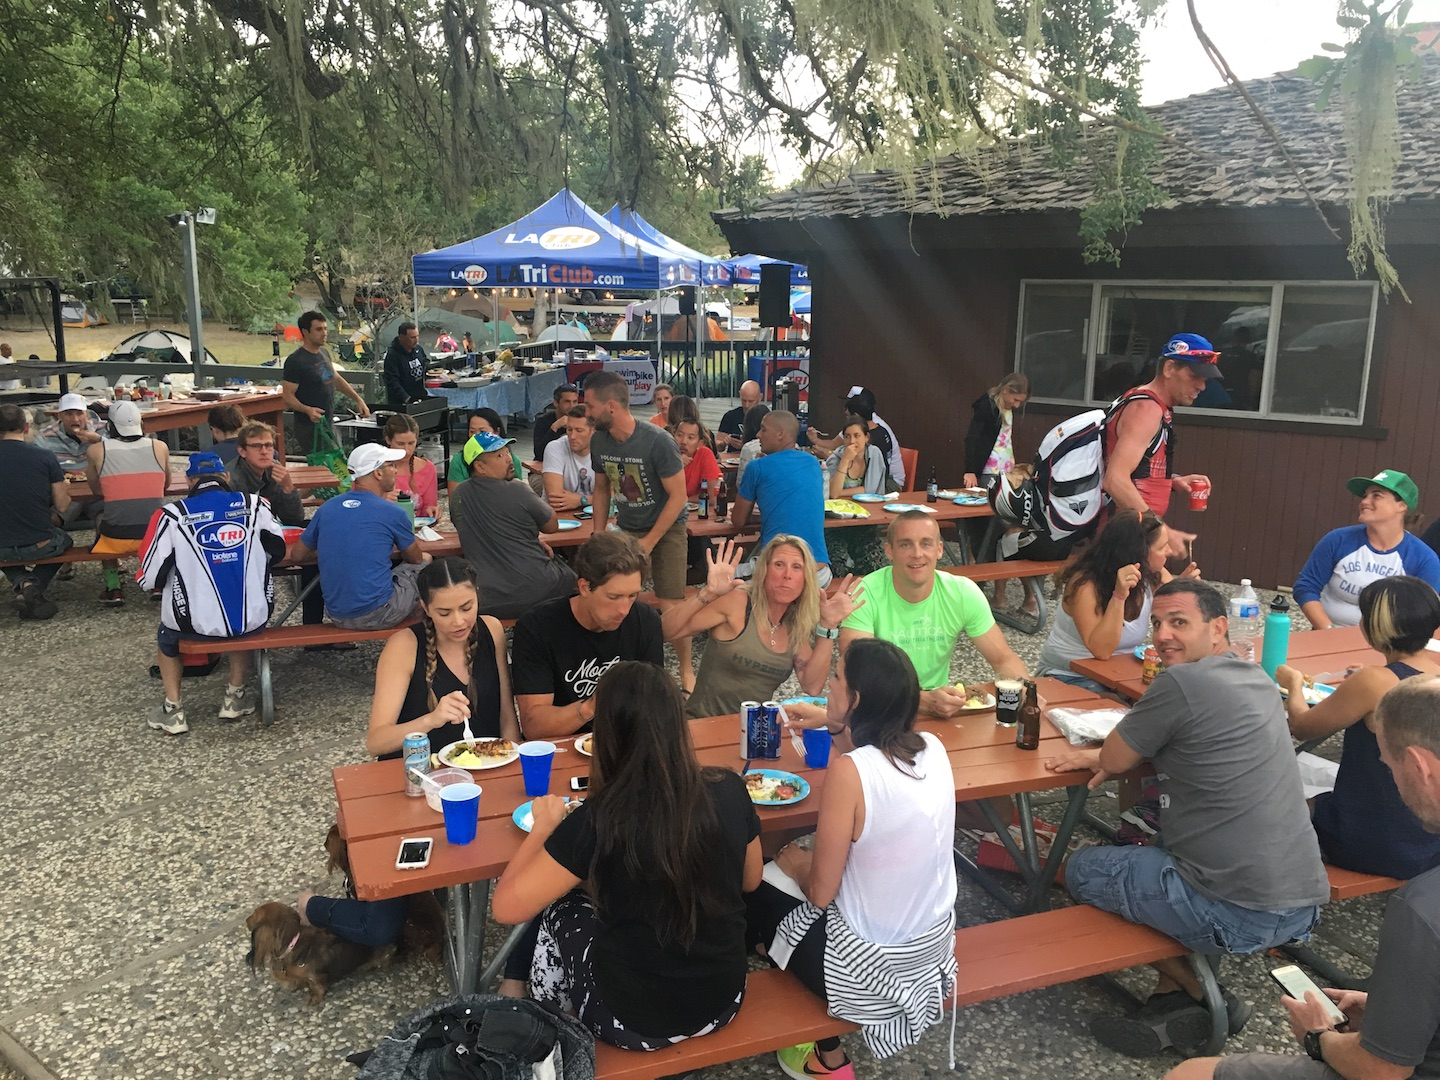 Camping & Racing With My Tri Club